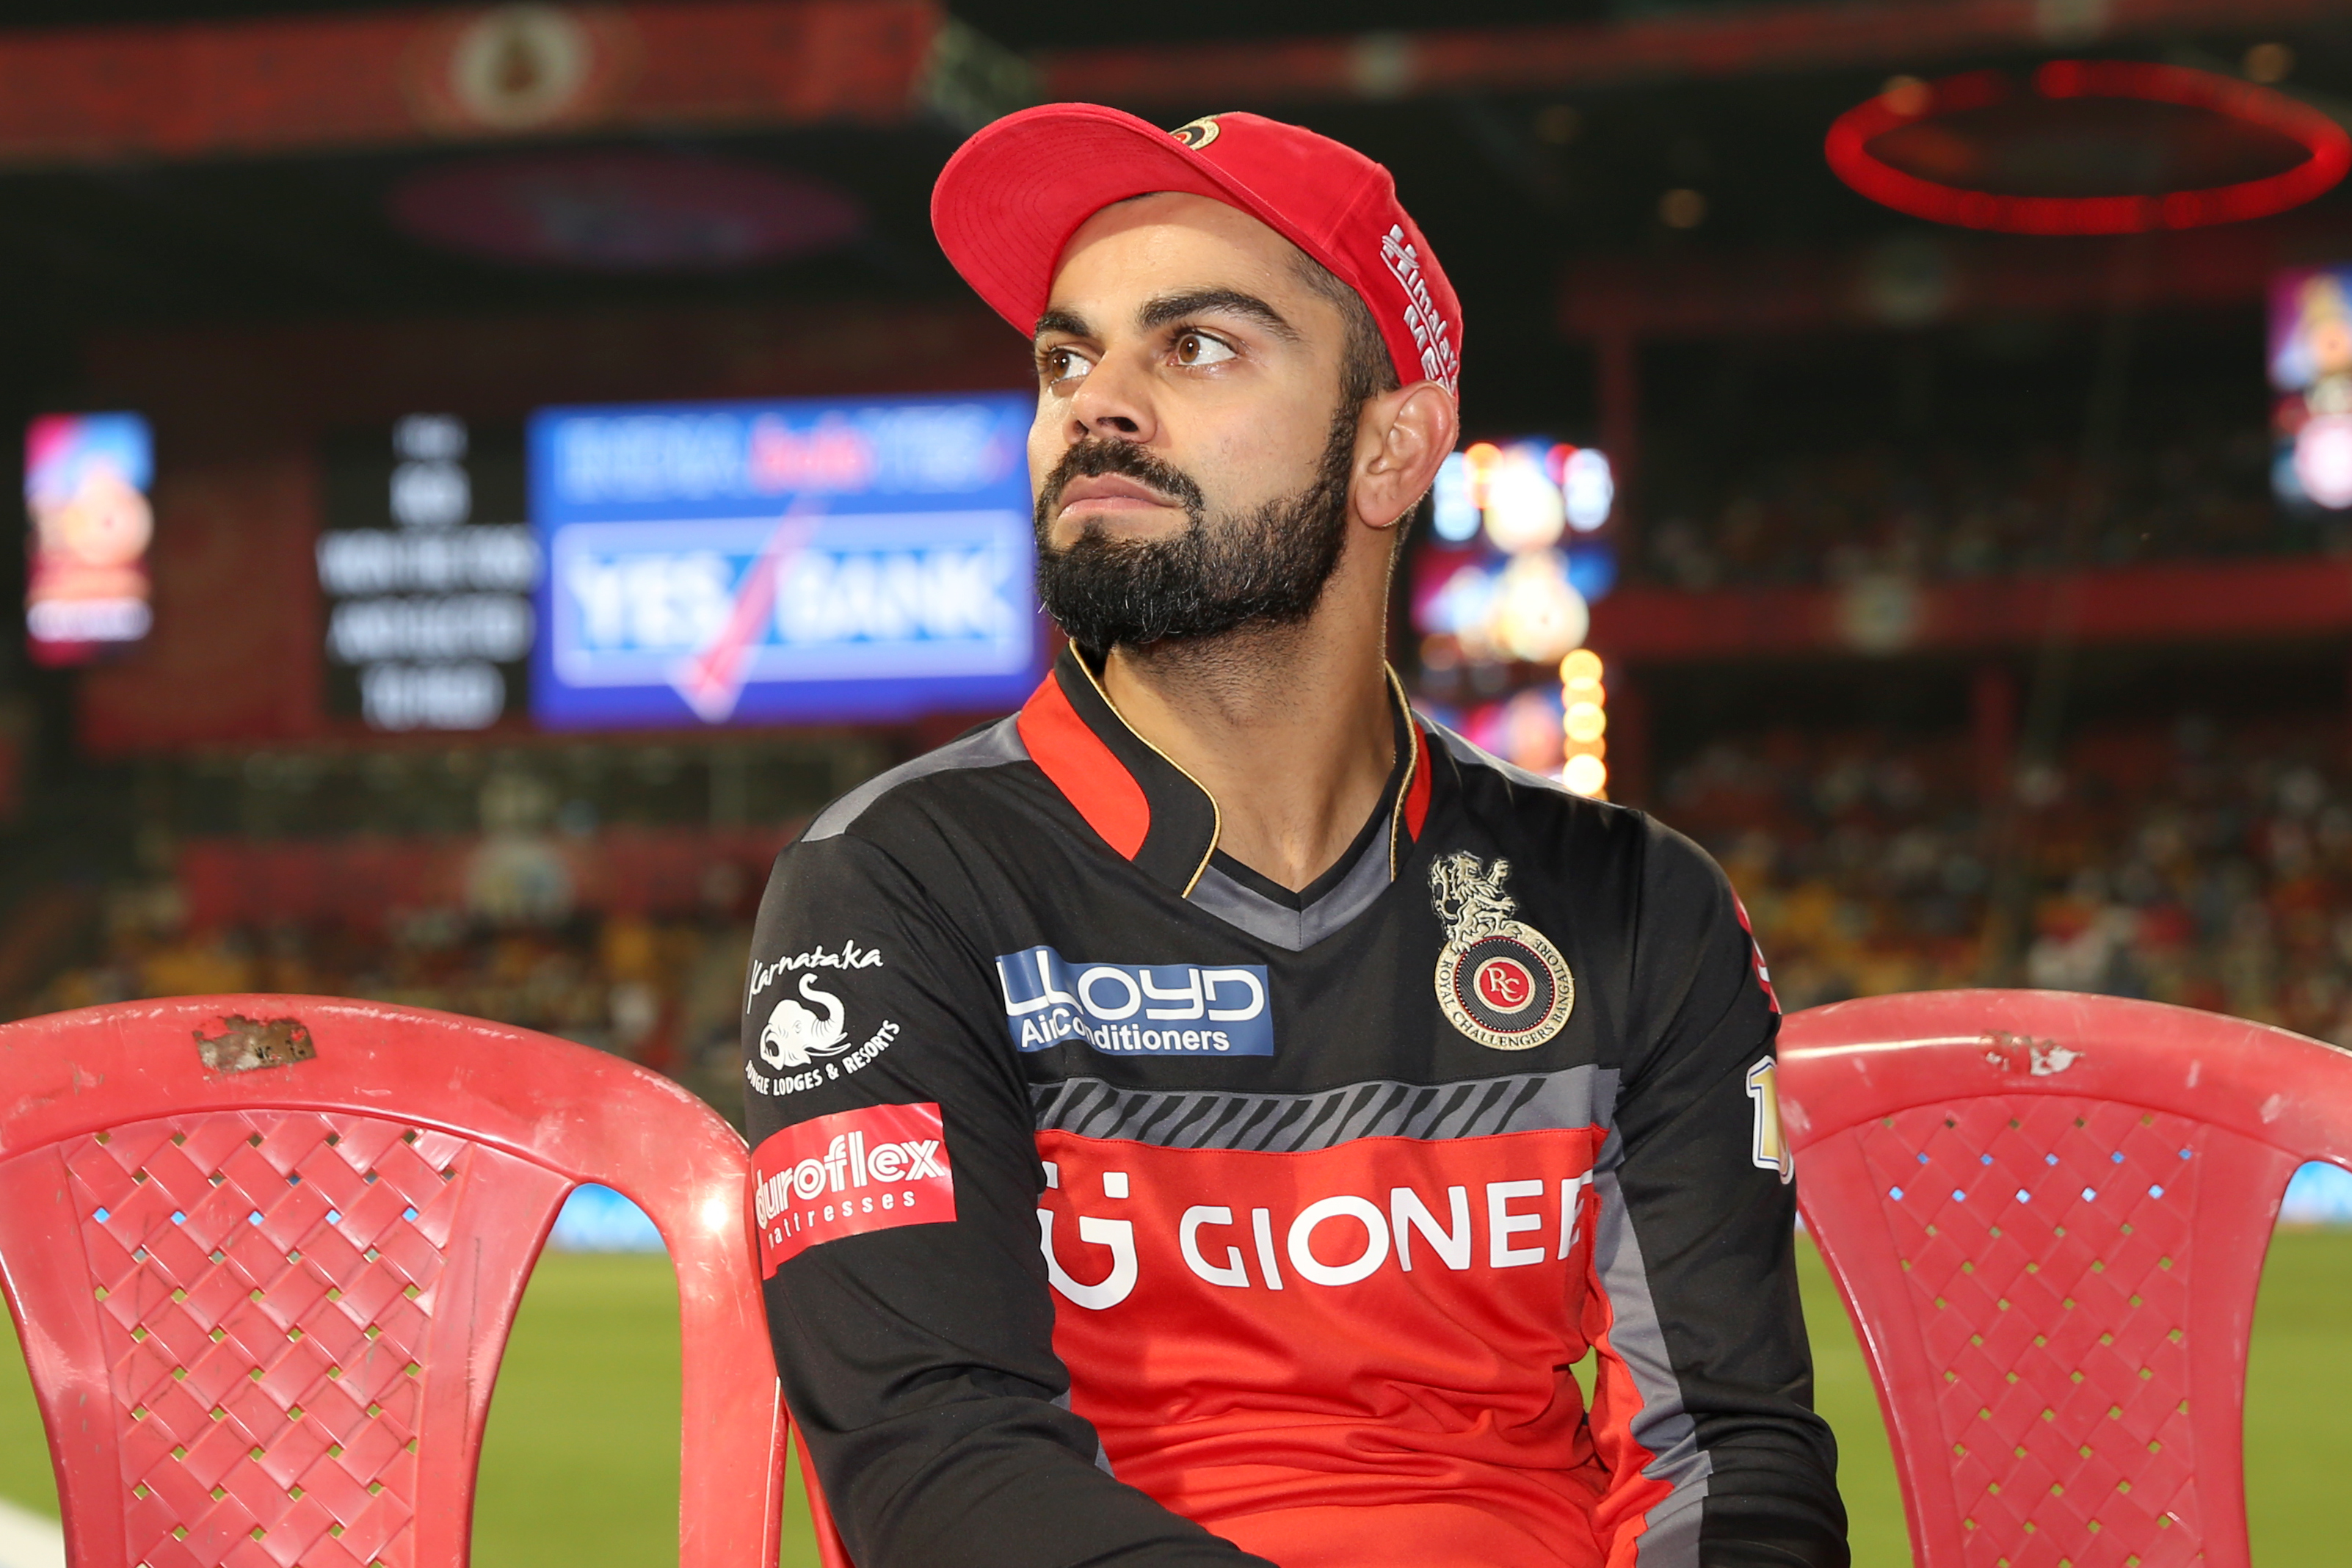 Virat Kohli plays for IPL franchise Royal Challengers Bangalore, which is owned by United Spirits (Faheem Hussain - Sportzpics - IPL)